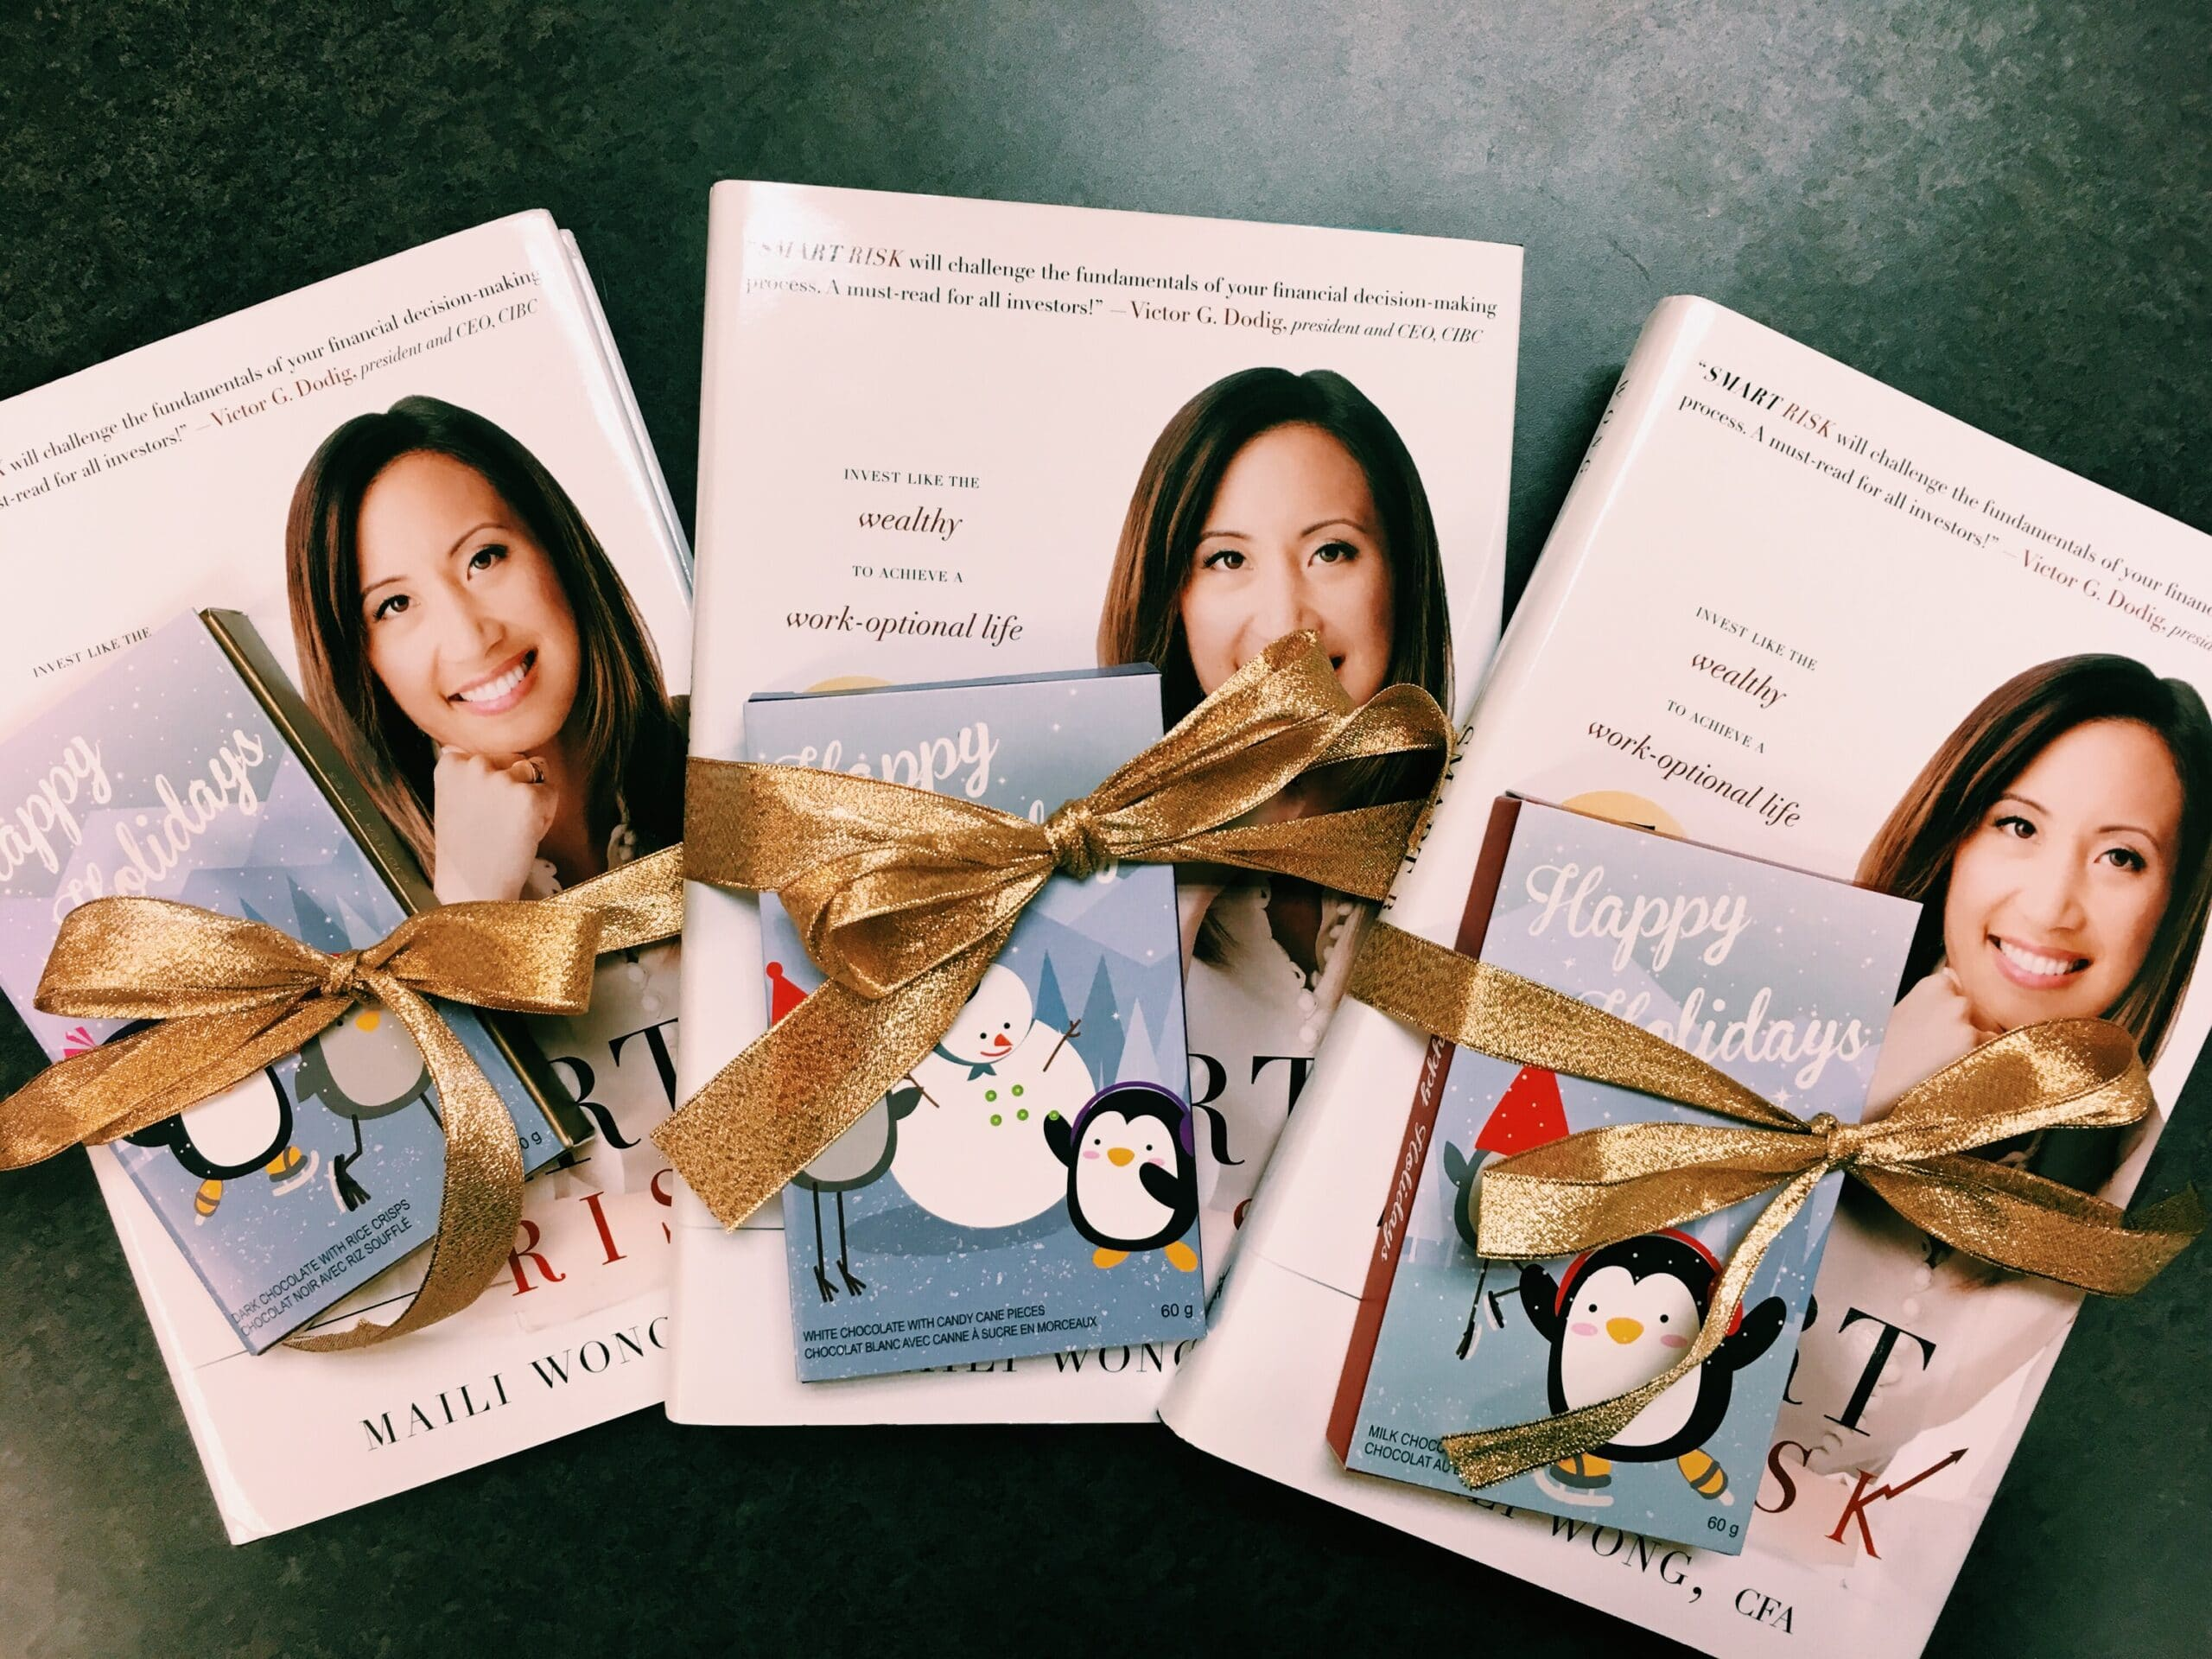 Smart Risk Holiday Gift Packages!